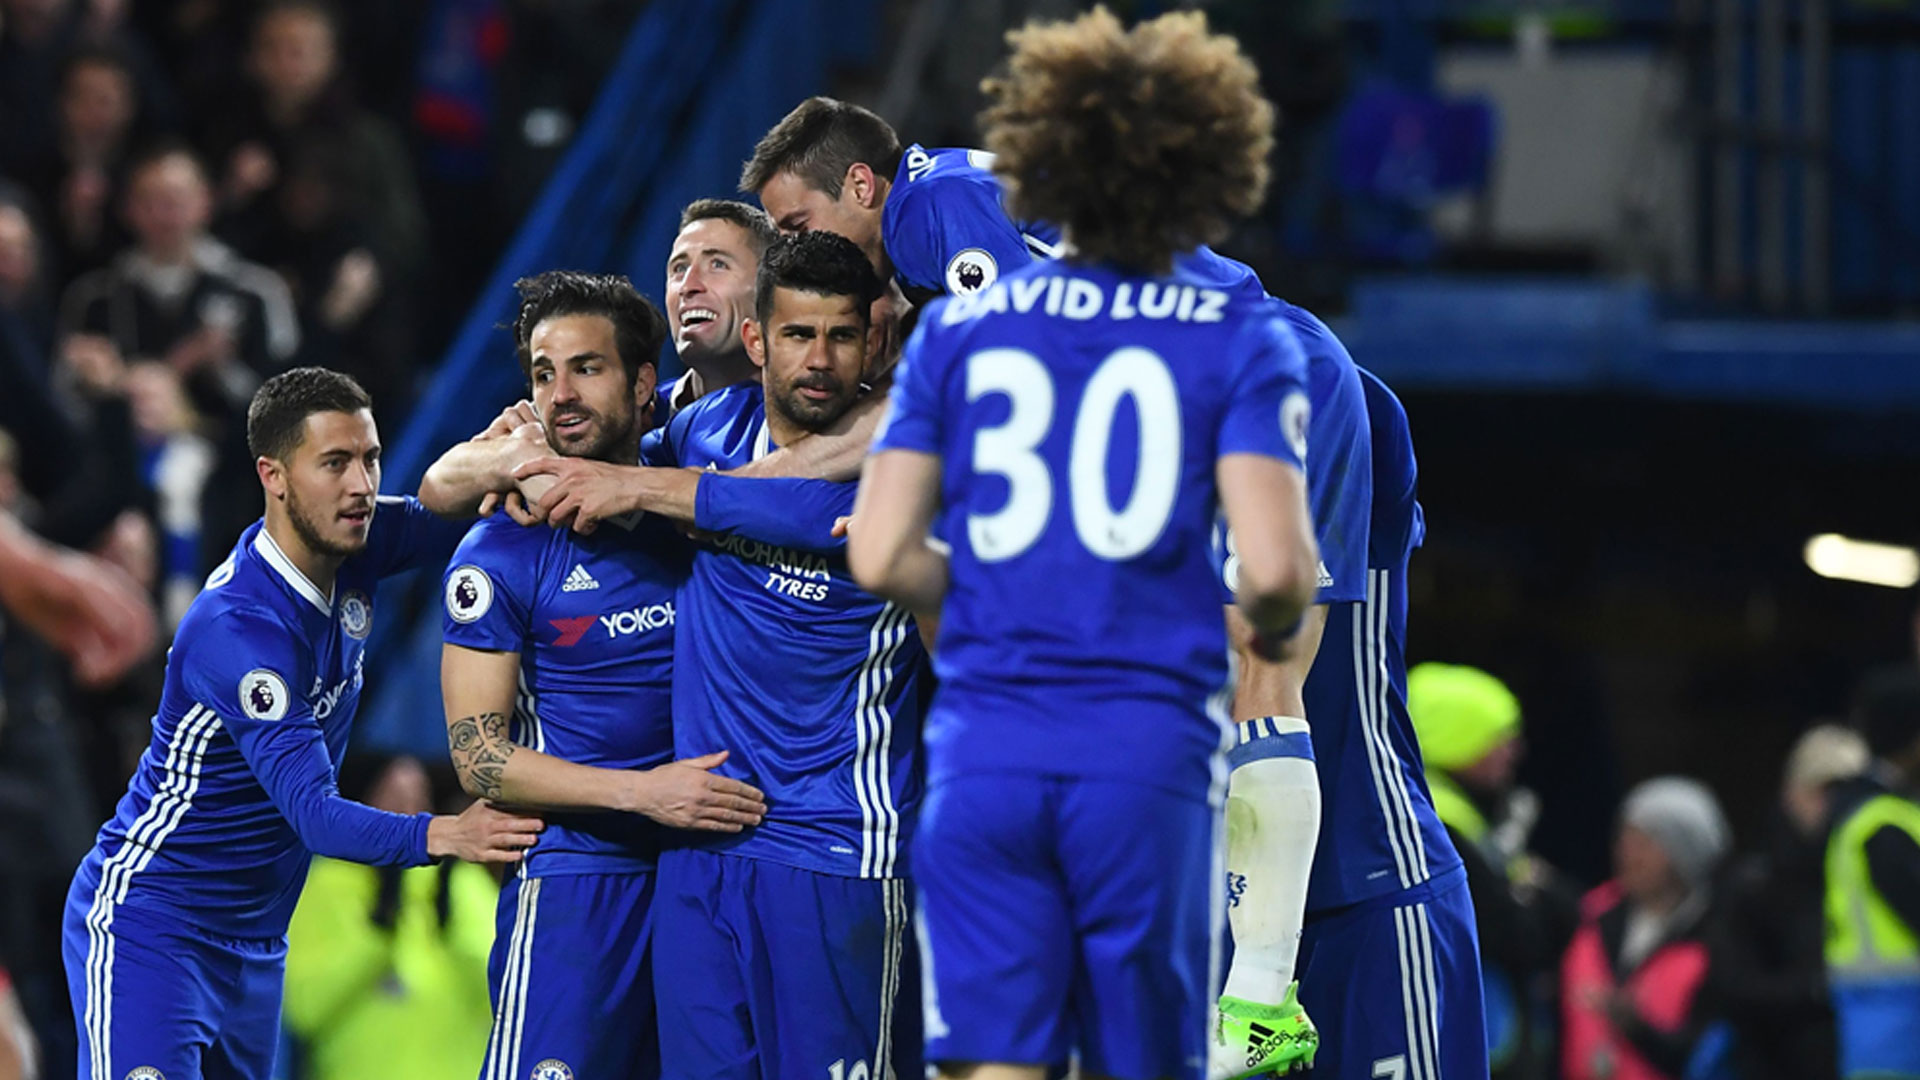 Chelsea beat Southampton 4-2 in English Premier League